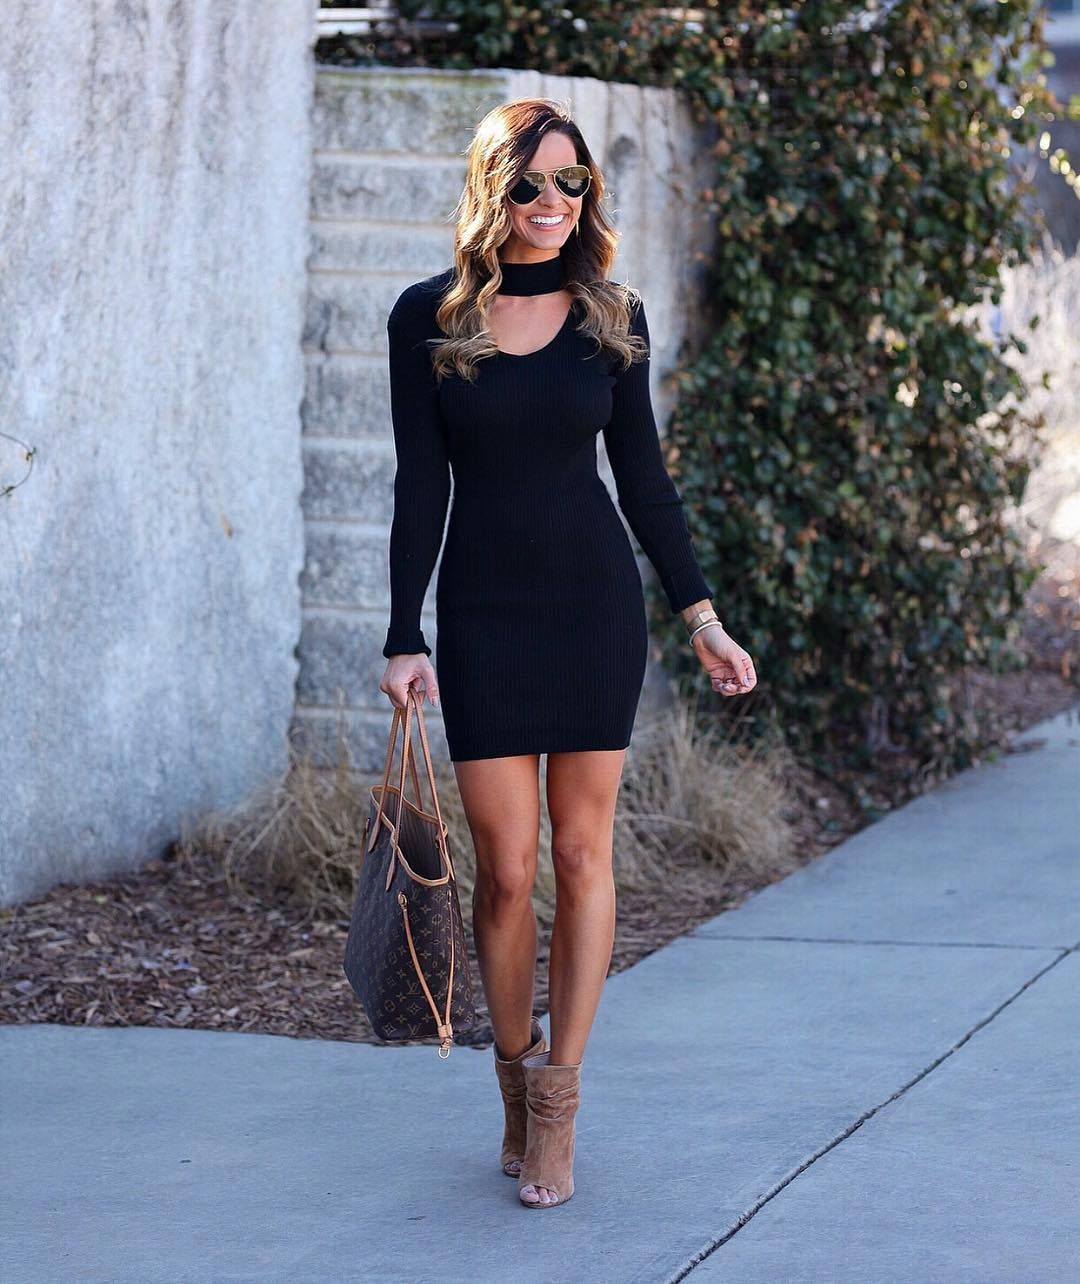 Girls Outfits With Tan Boots 30 Ideas How To Wear Tan Shoes Fashion Outfits Outfits Verano [ 1284 x 1080 Pixel ]